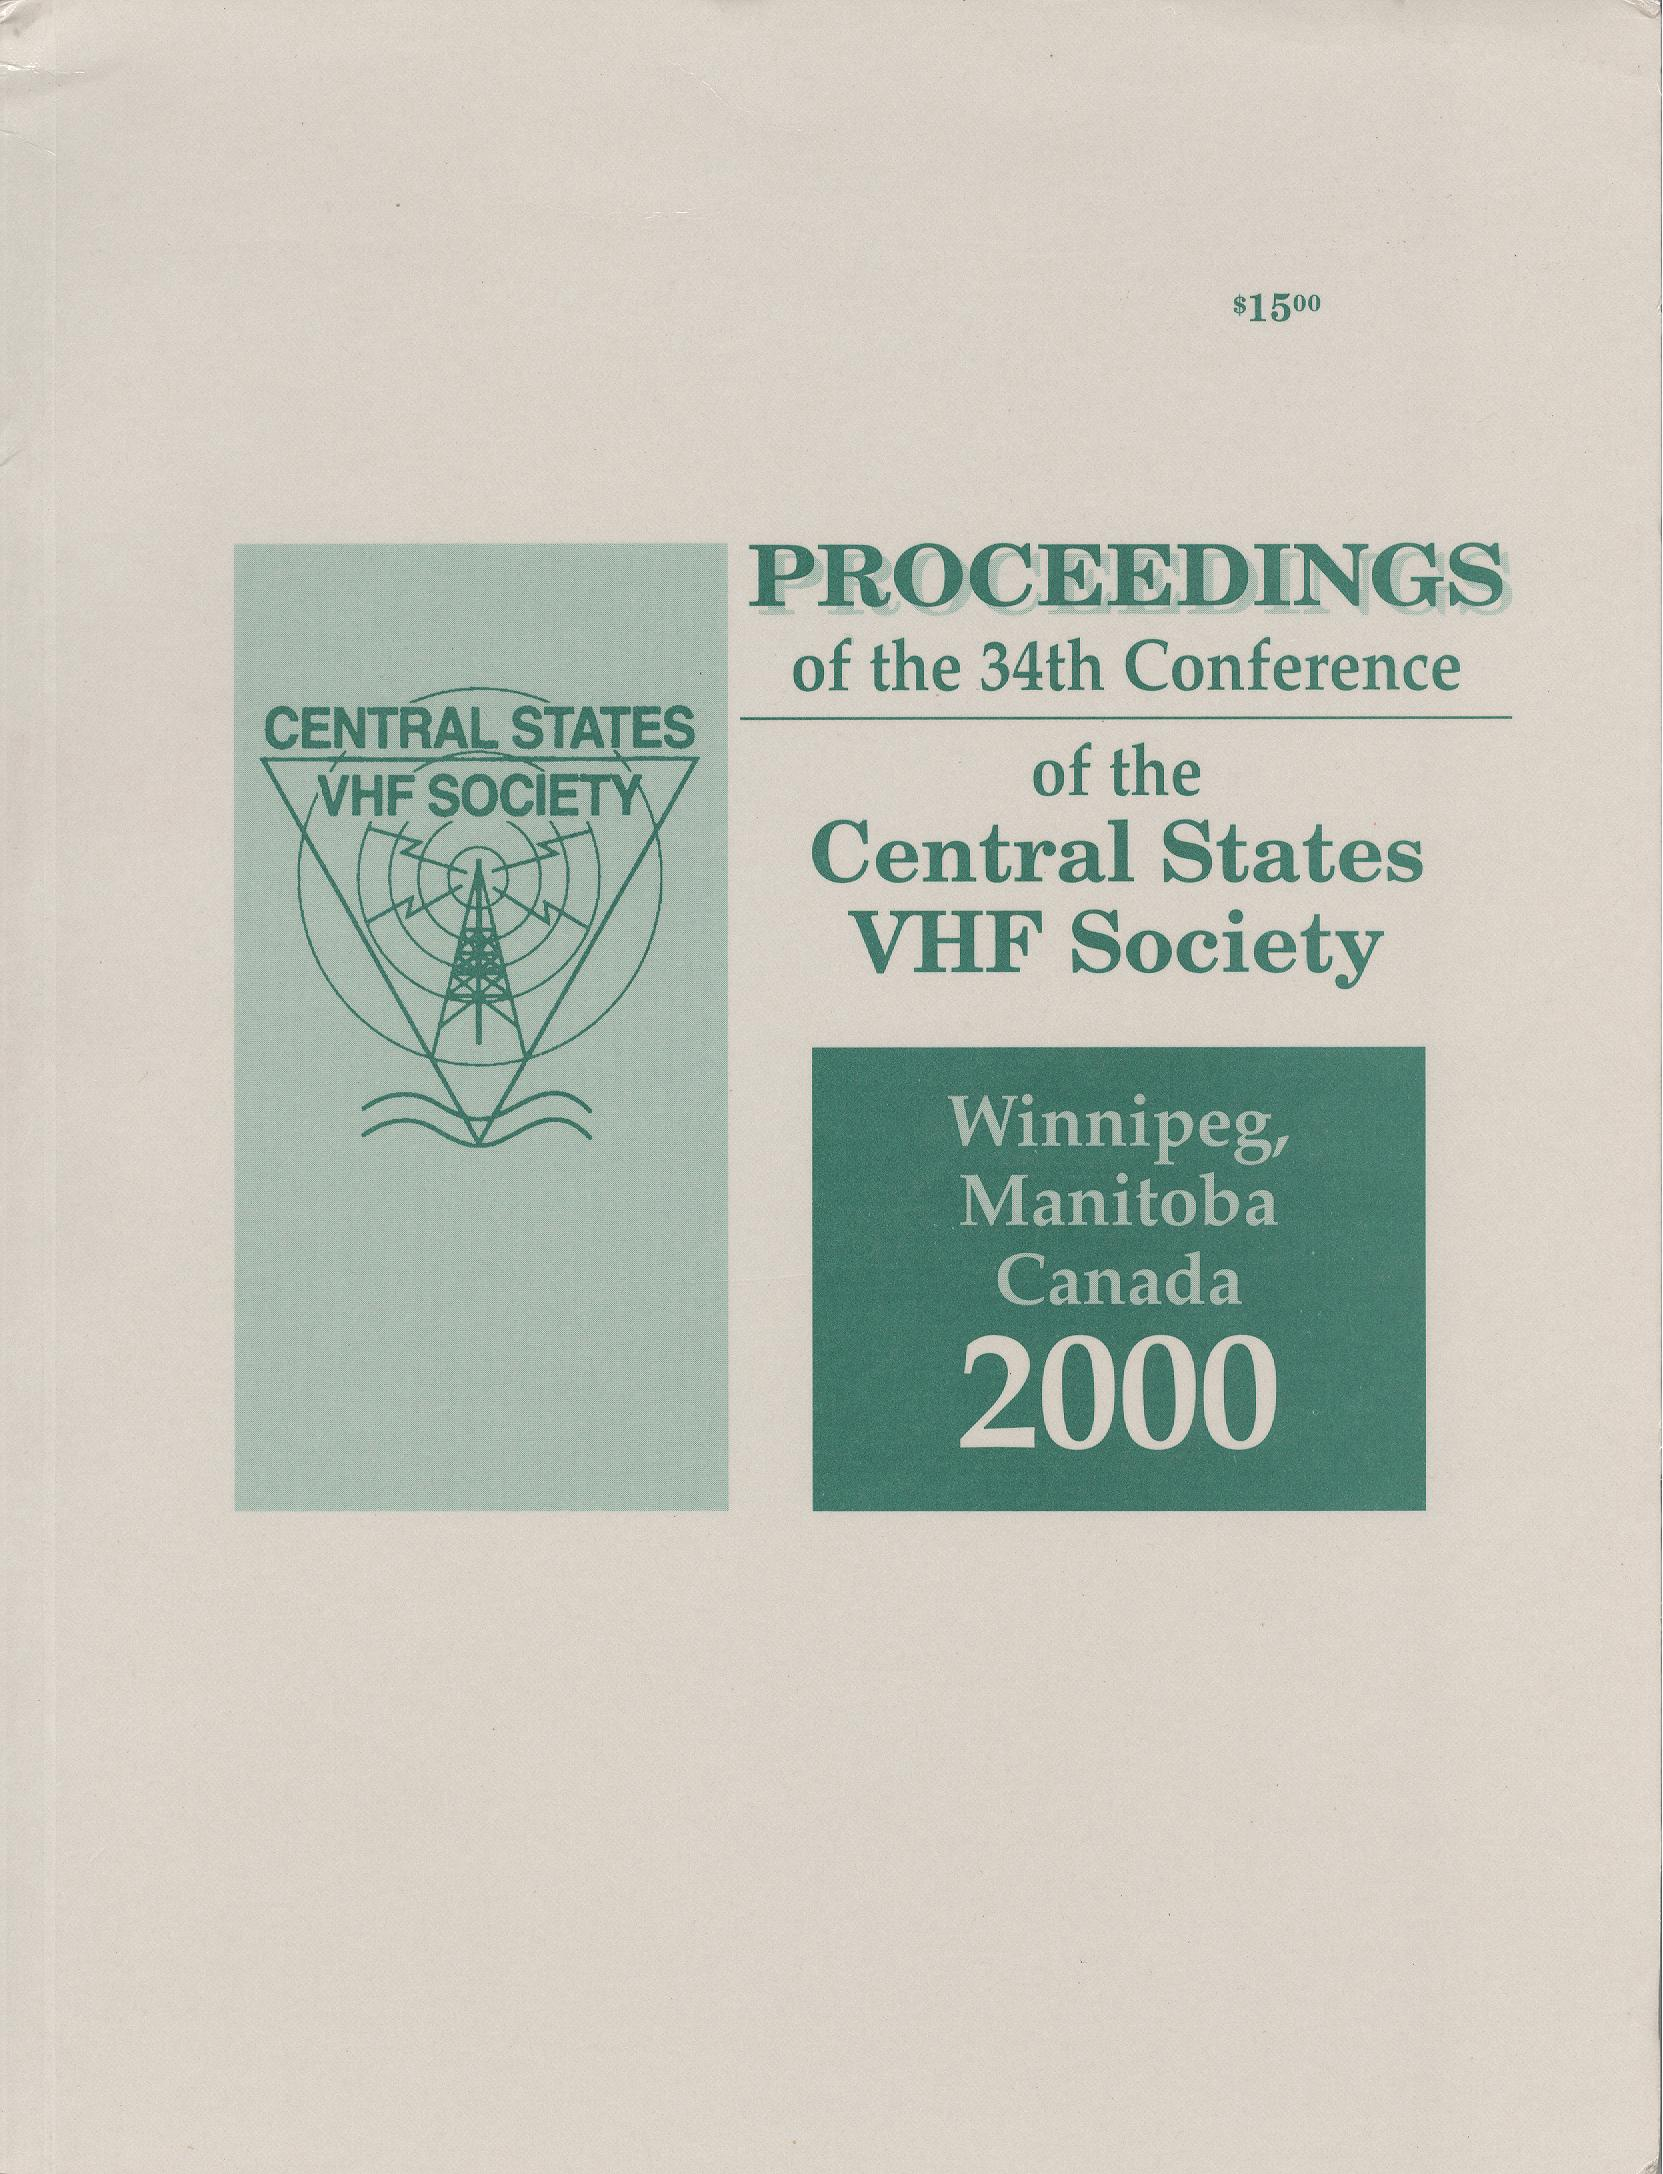 Proceedings of the 34th Conference of the Central State VHF Society 2000